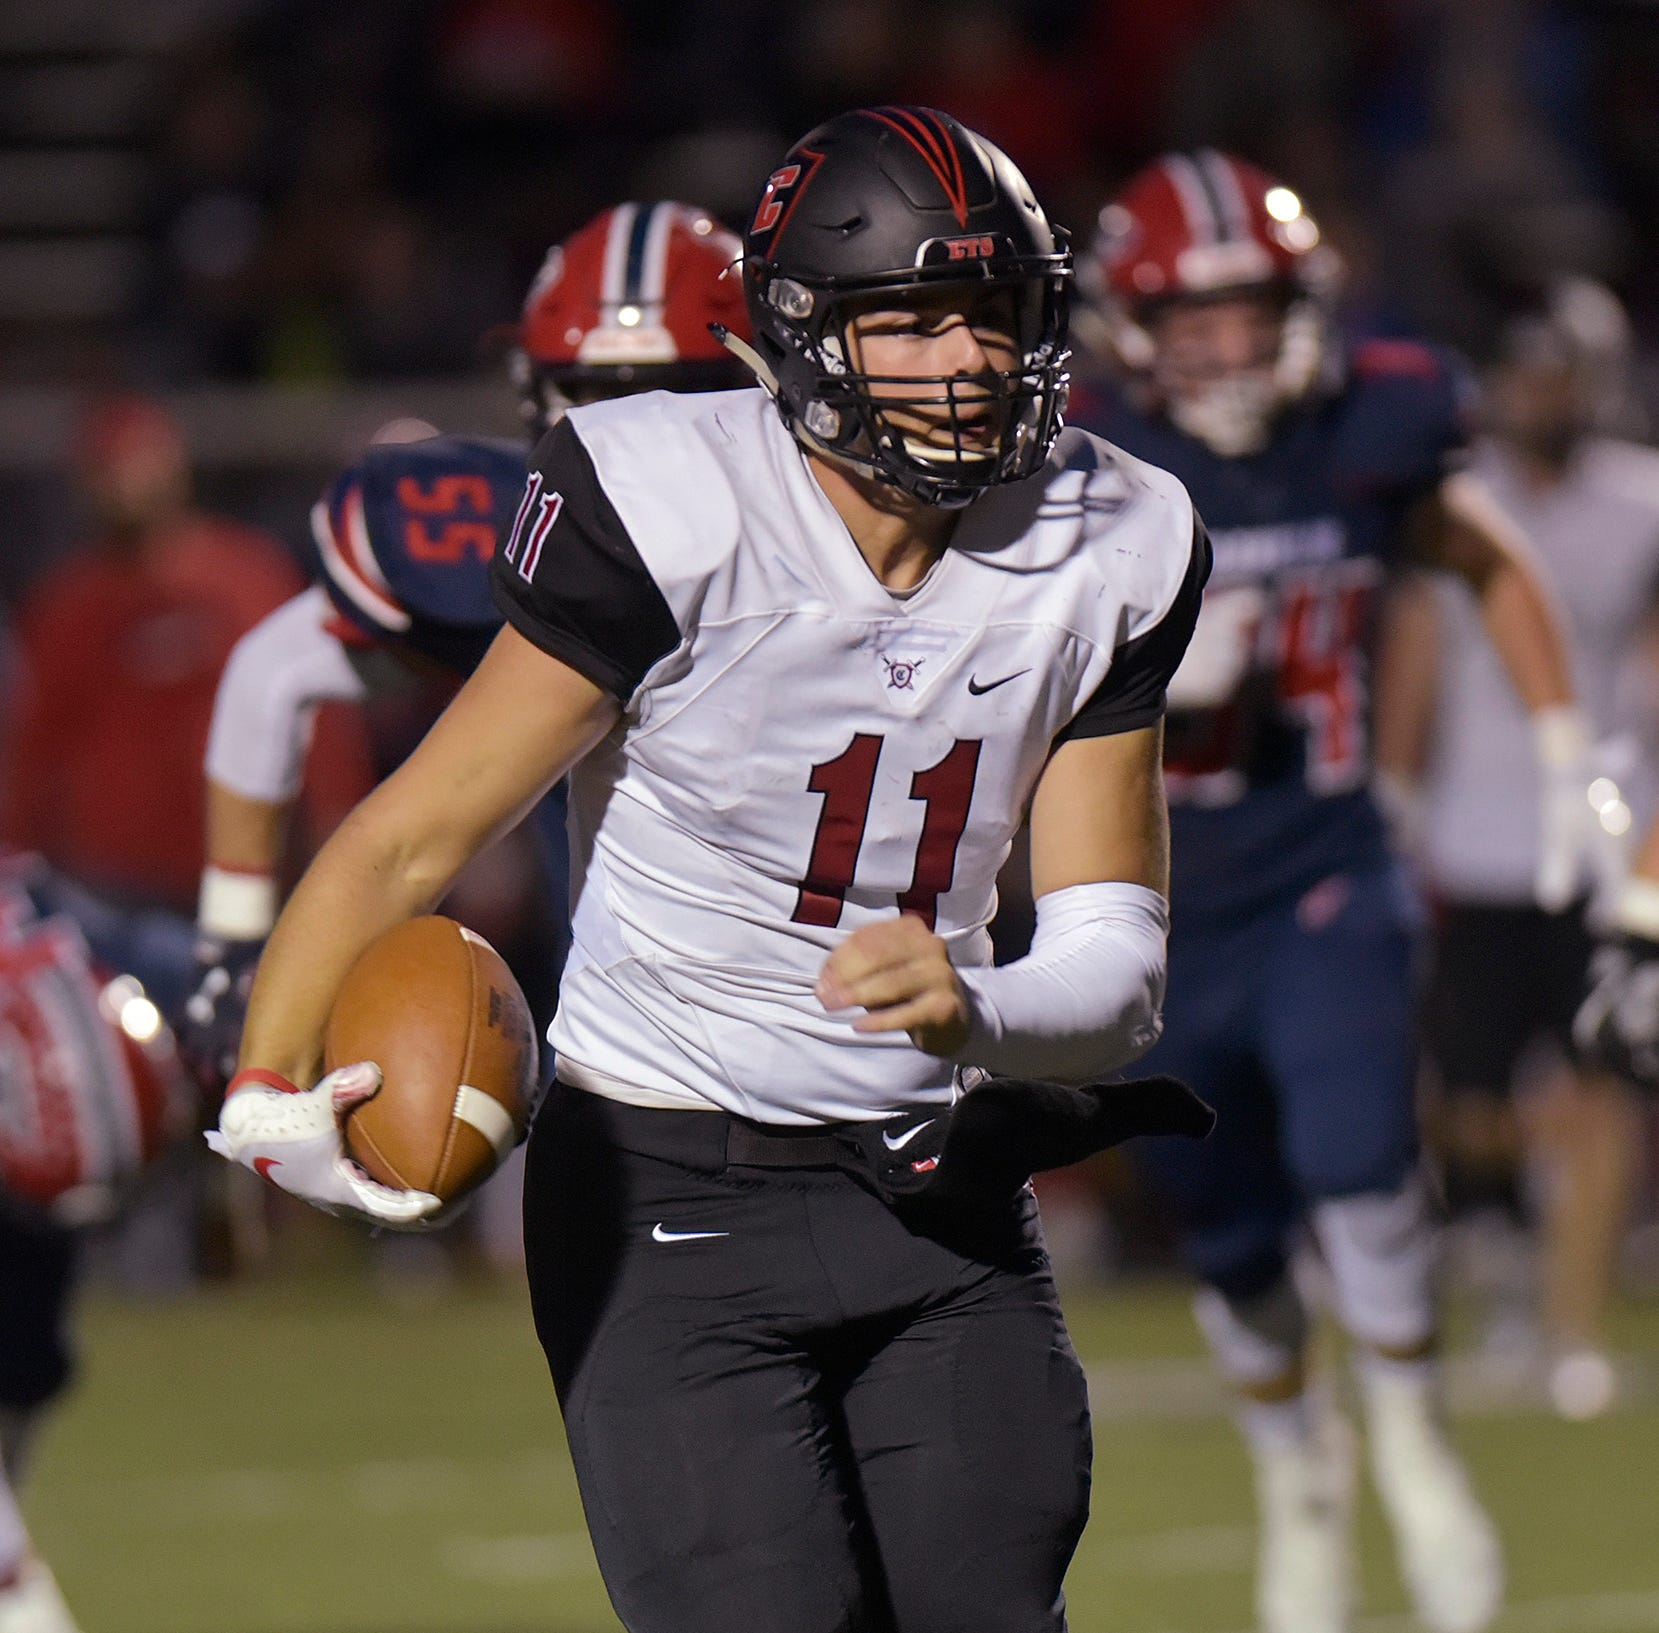 Livonia Churchill makes its way through football gauntlet to beat Franklin, 41-35